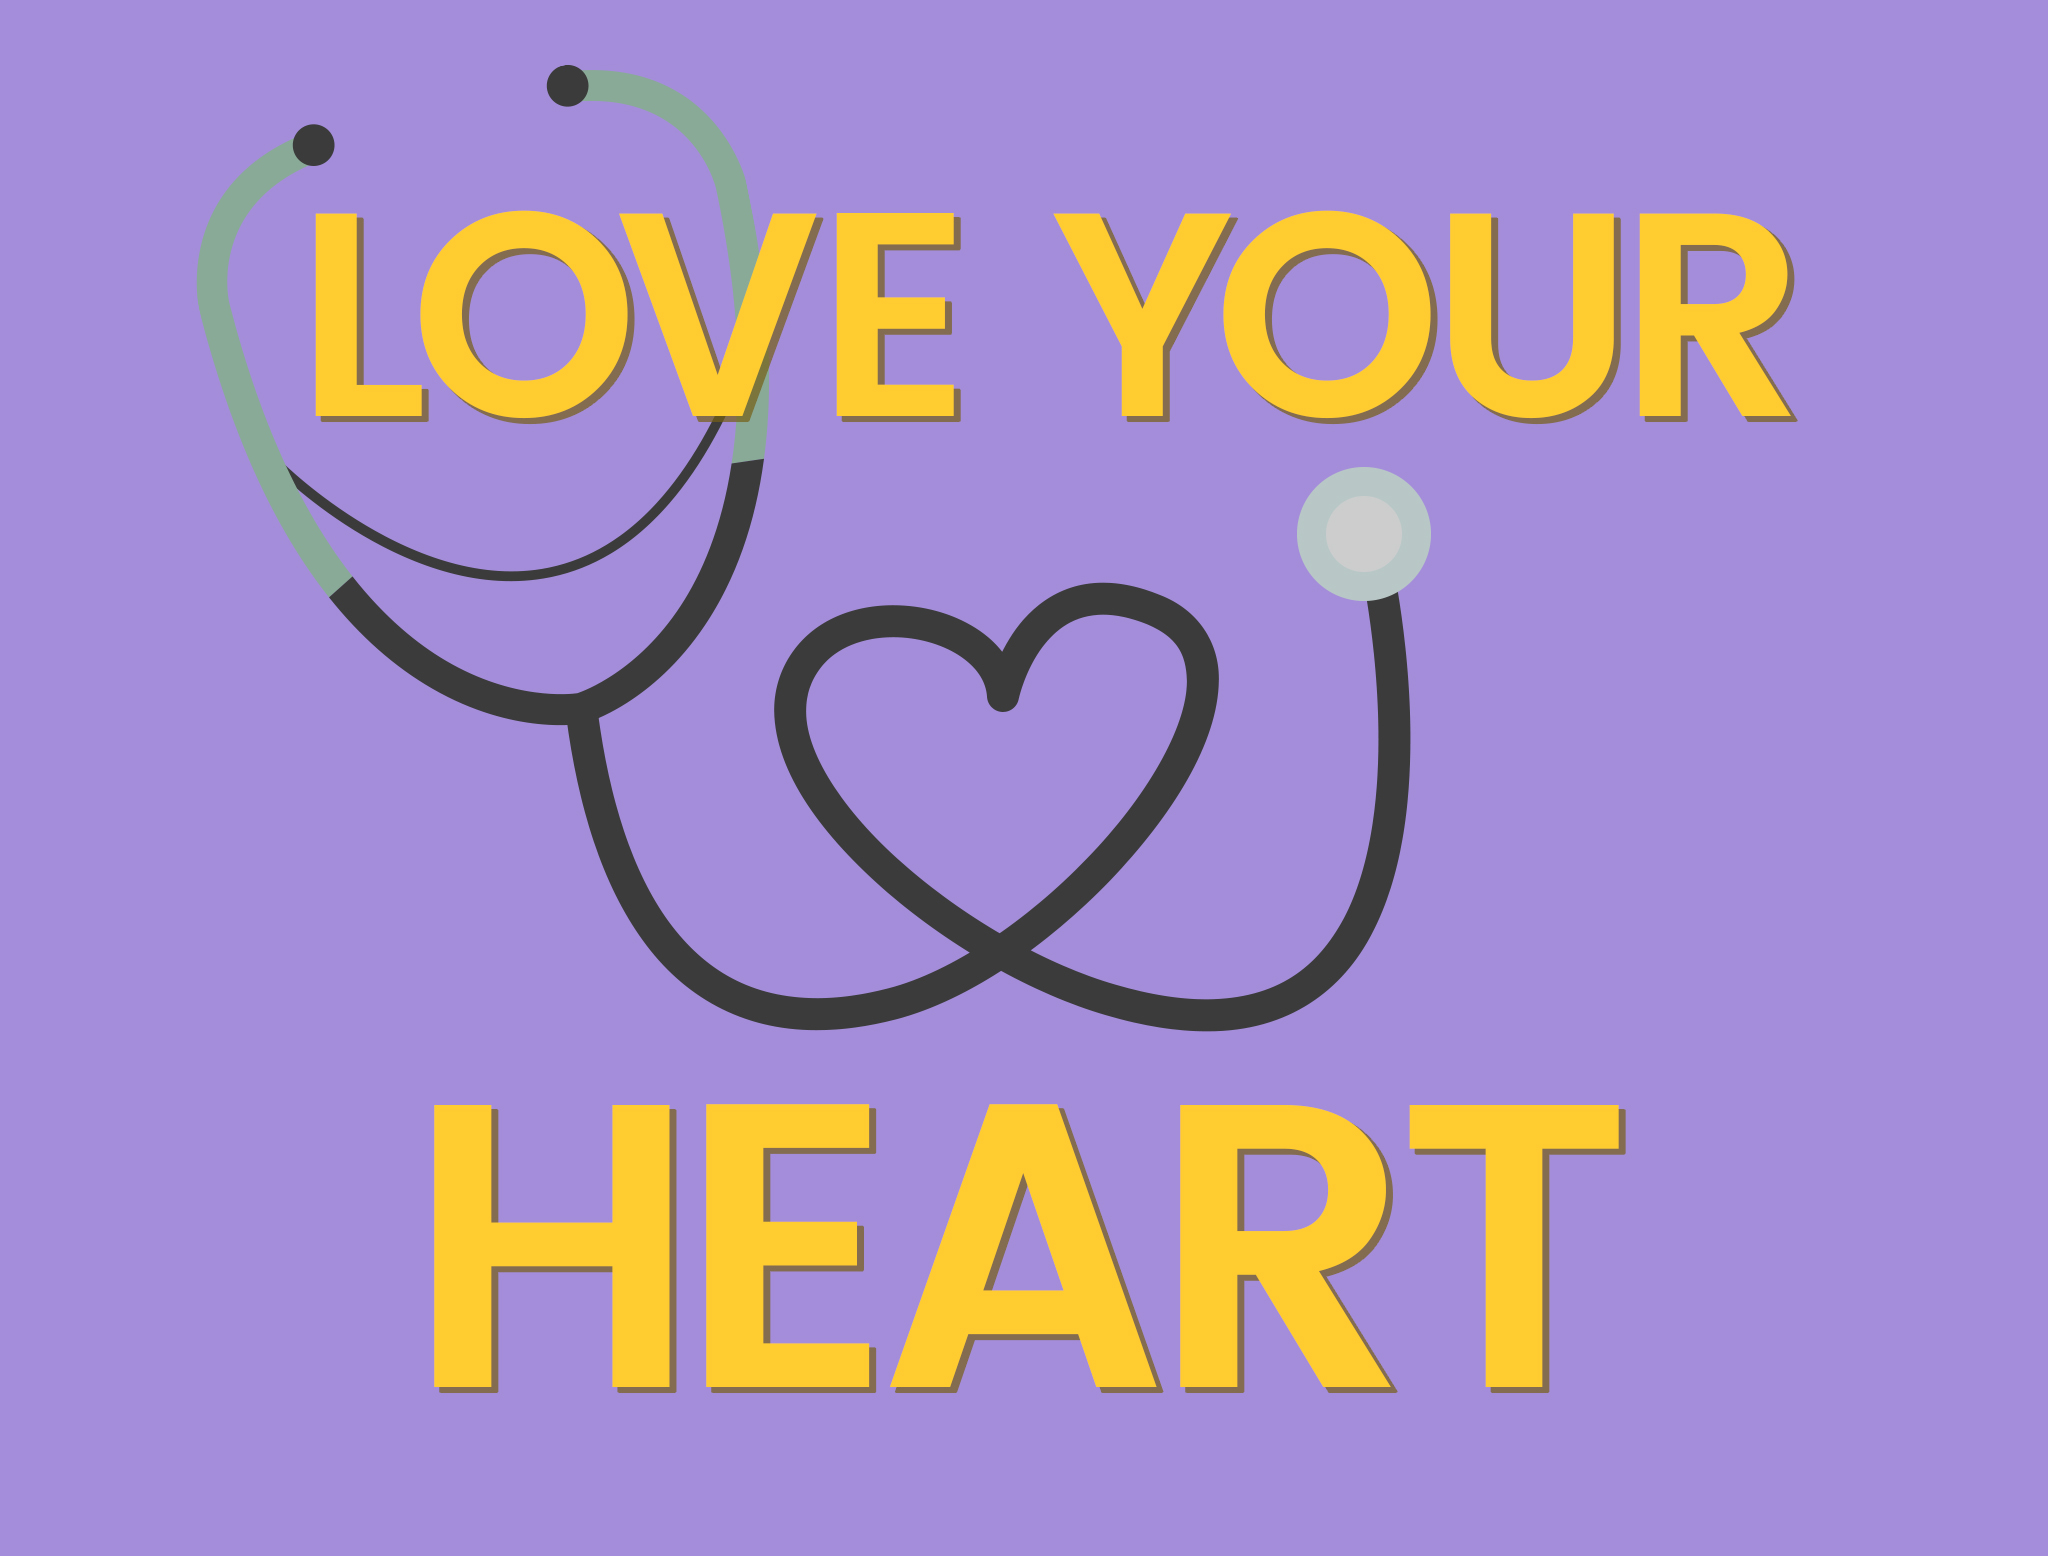 Words Love your heart - Cartoon of a stethescope in shape of heart